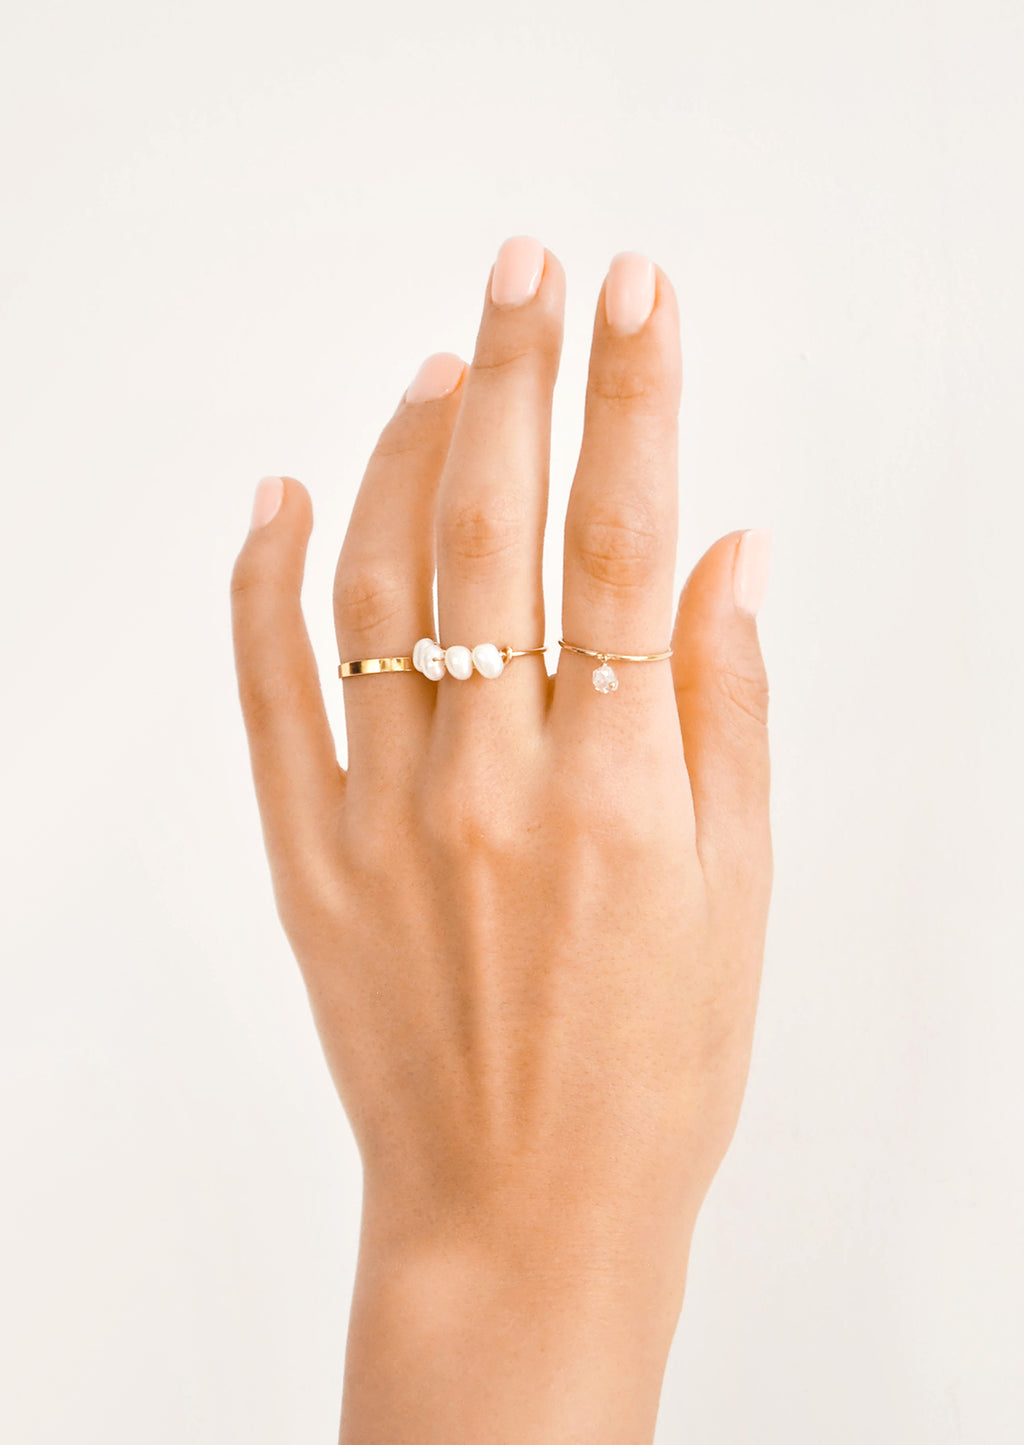 2: Simple Band Stacking Ring